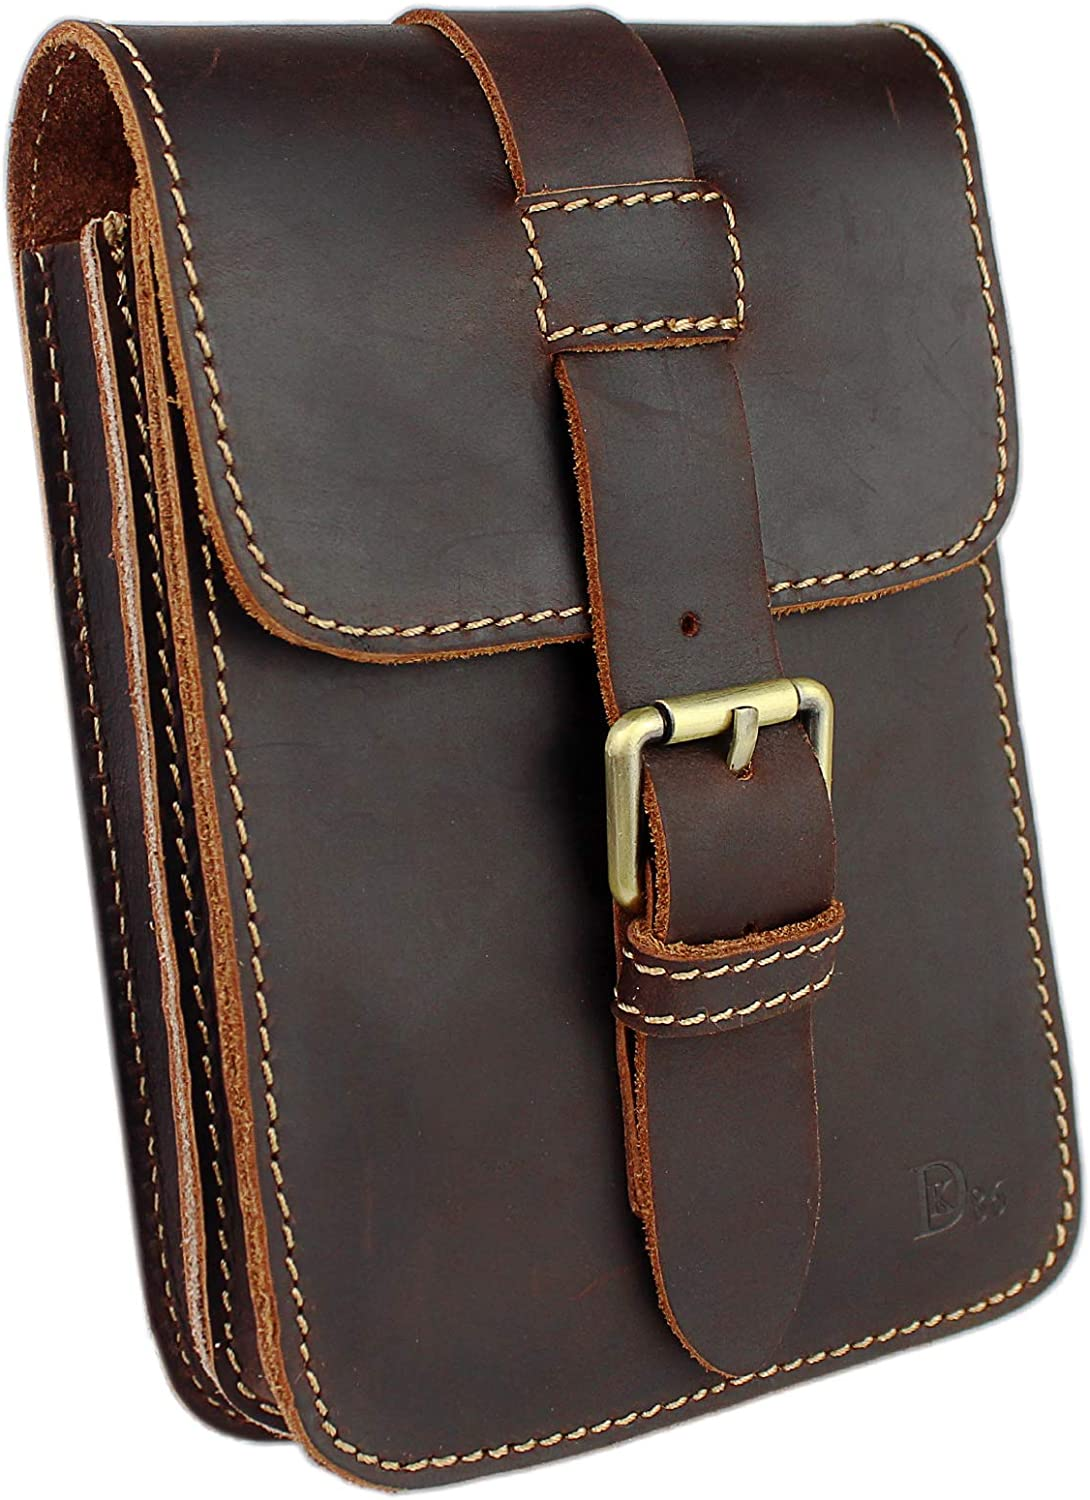 DK86 Men's Leather store Belt Pouch Waist Bag Lo with Pack Fanny Today's only